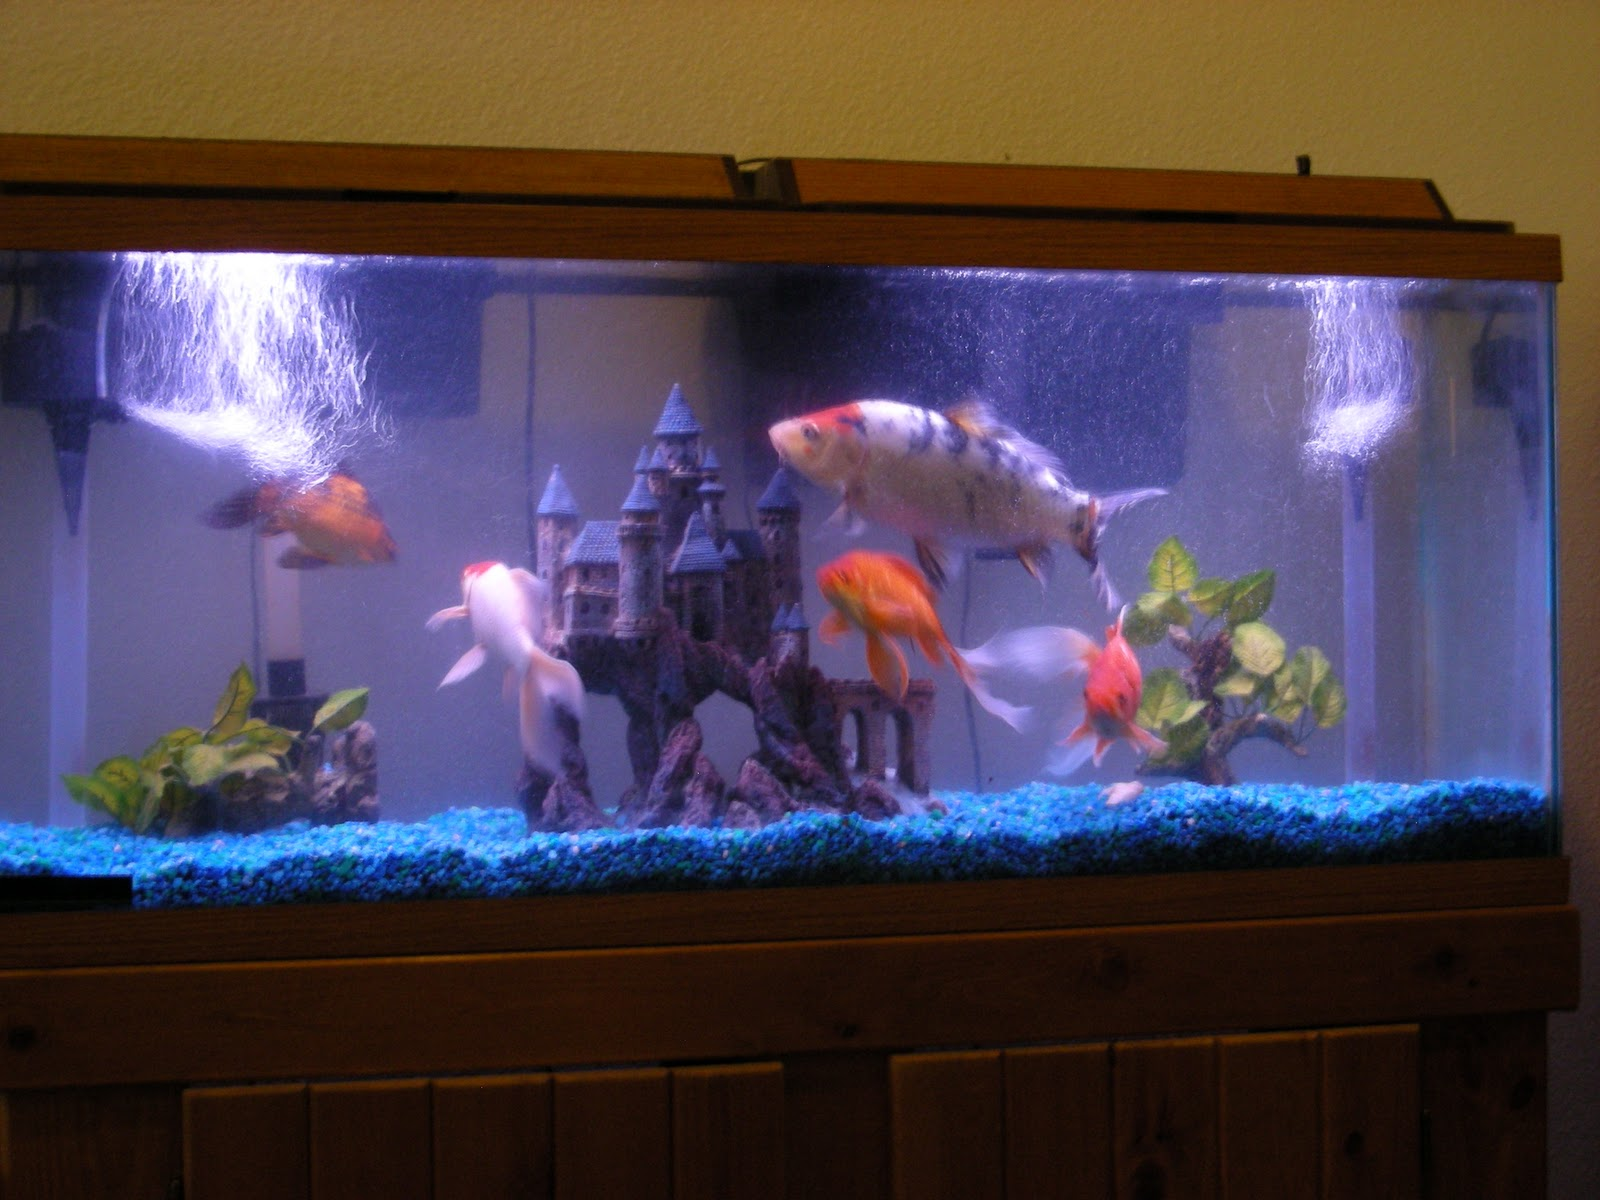 55 Gallon (210 liter) fishtank with wooden stand and some basic